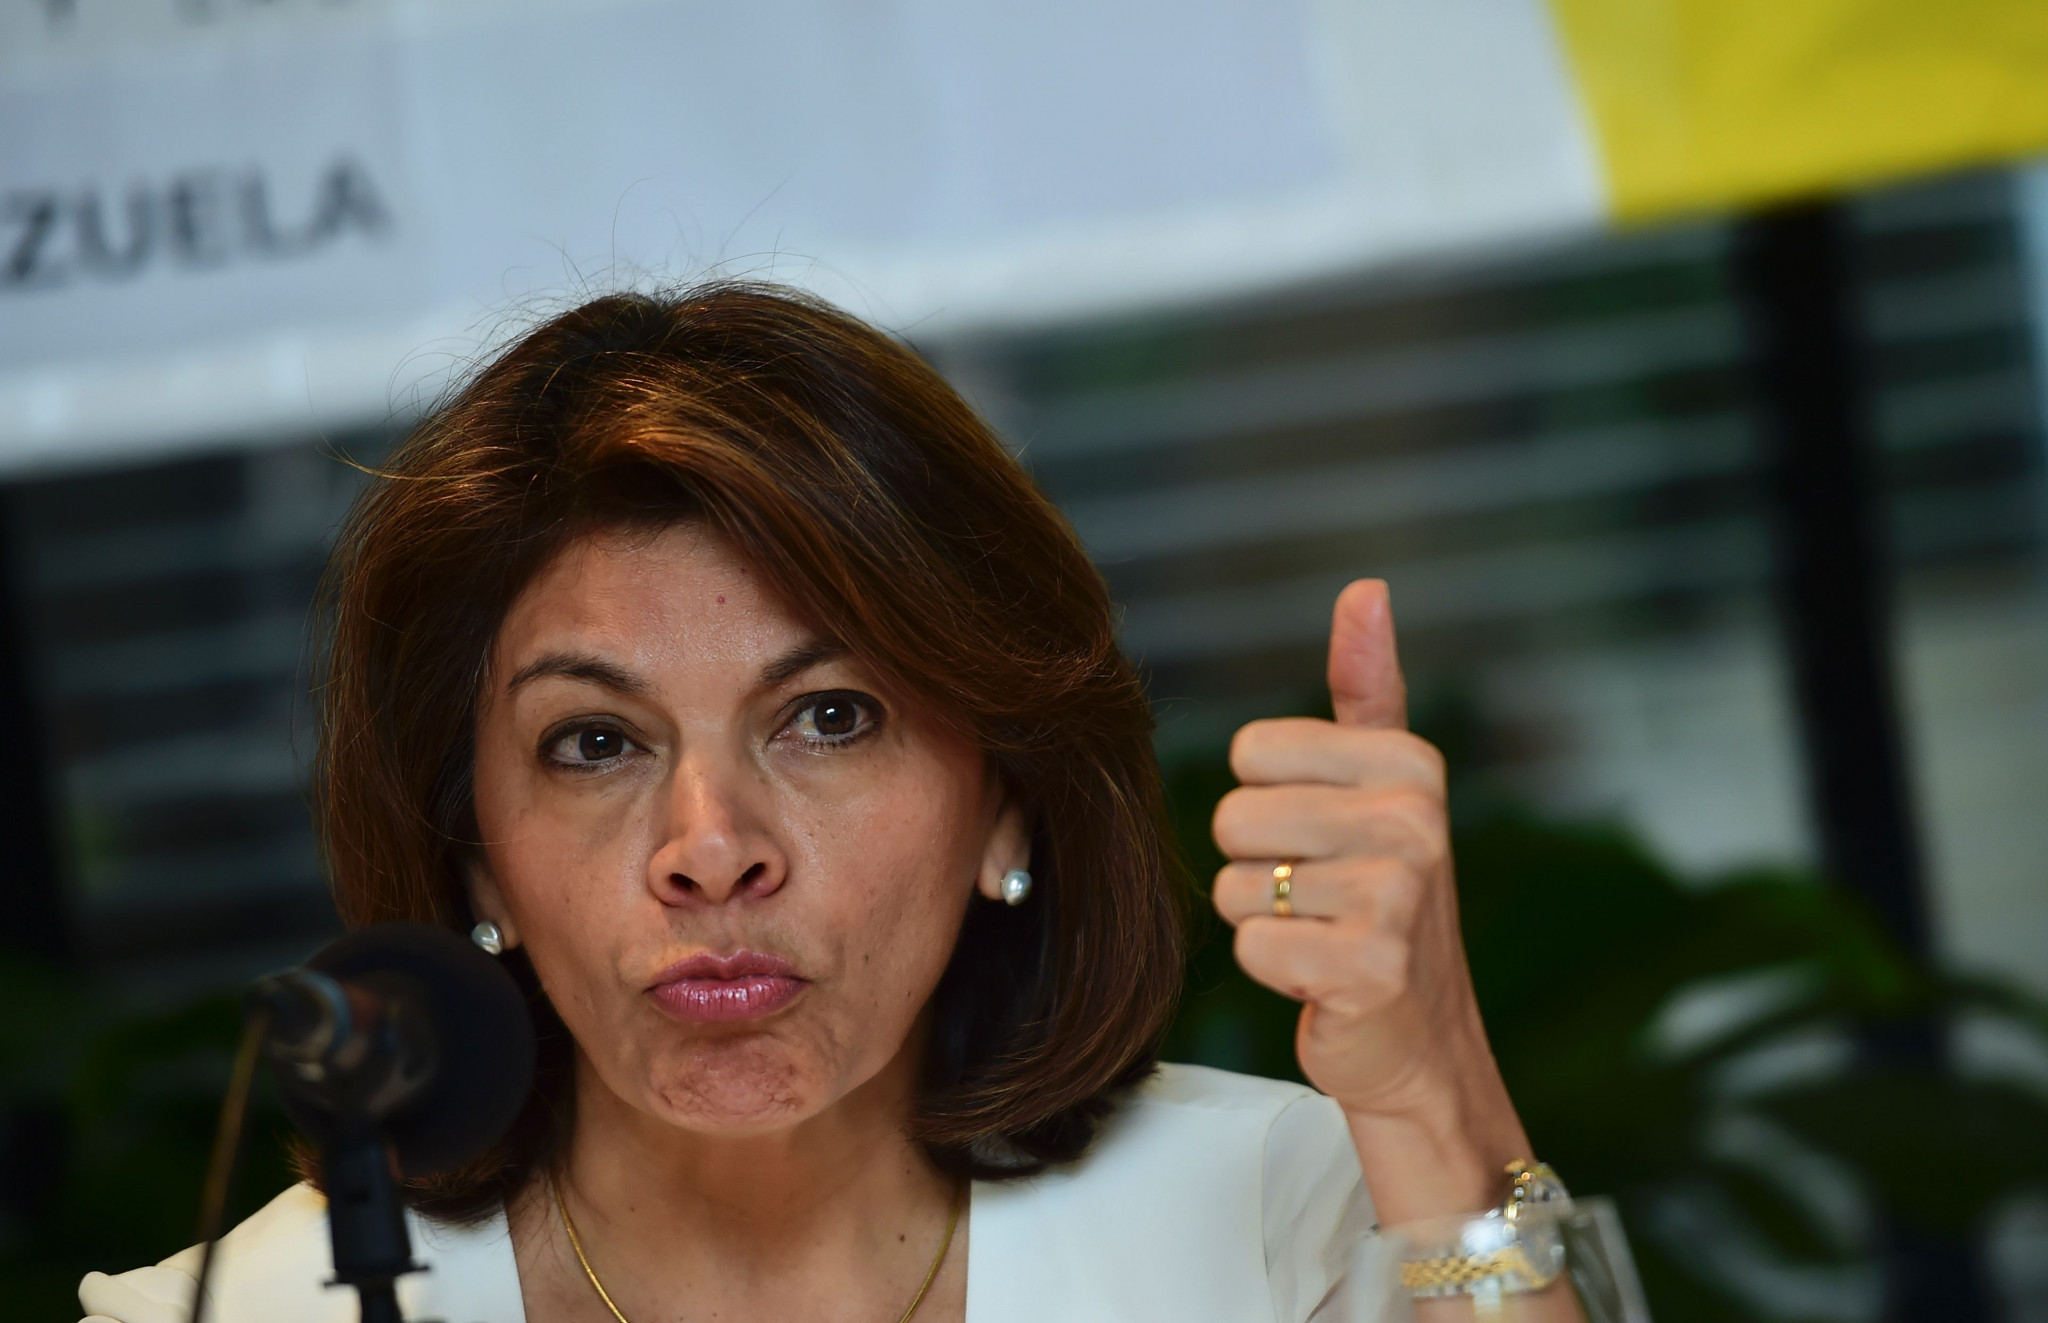 Costa Rica's former President Laura Chinchilla is among 10 new members proposed for election to the International Olympic Committee ©Getty Images